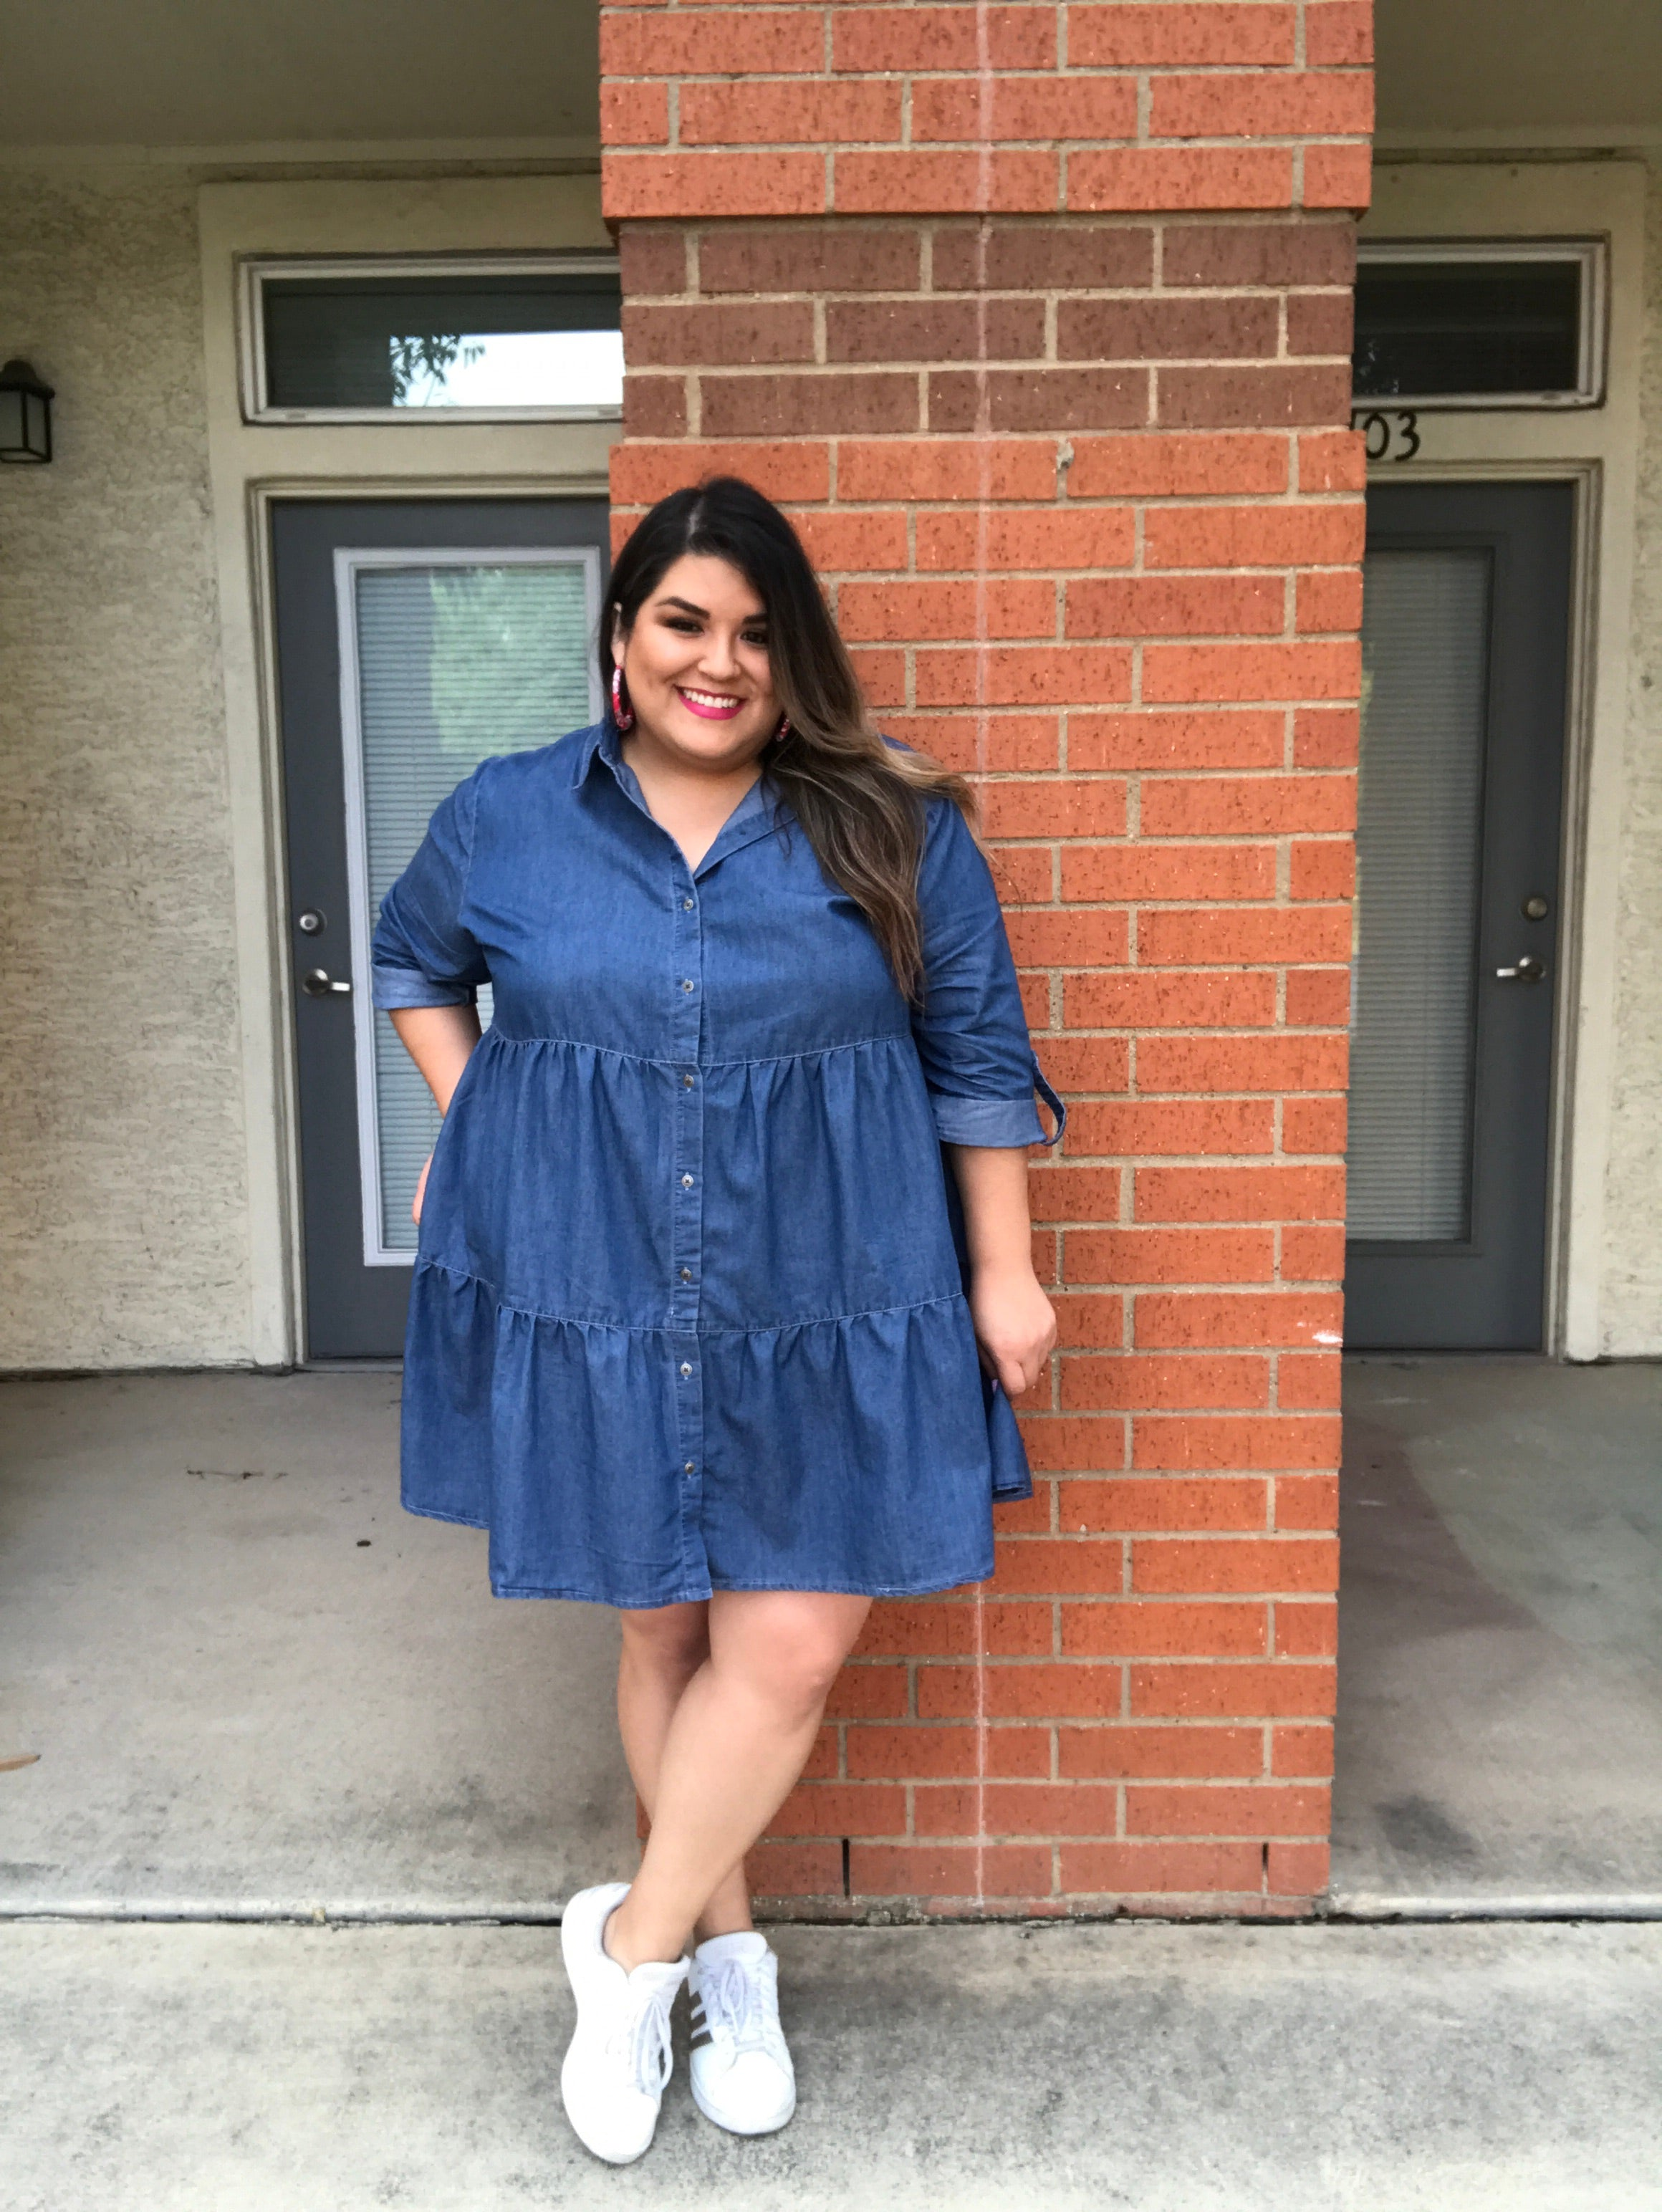 Blue Jean Baby(doll) Dress